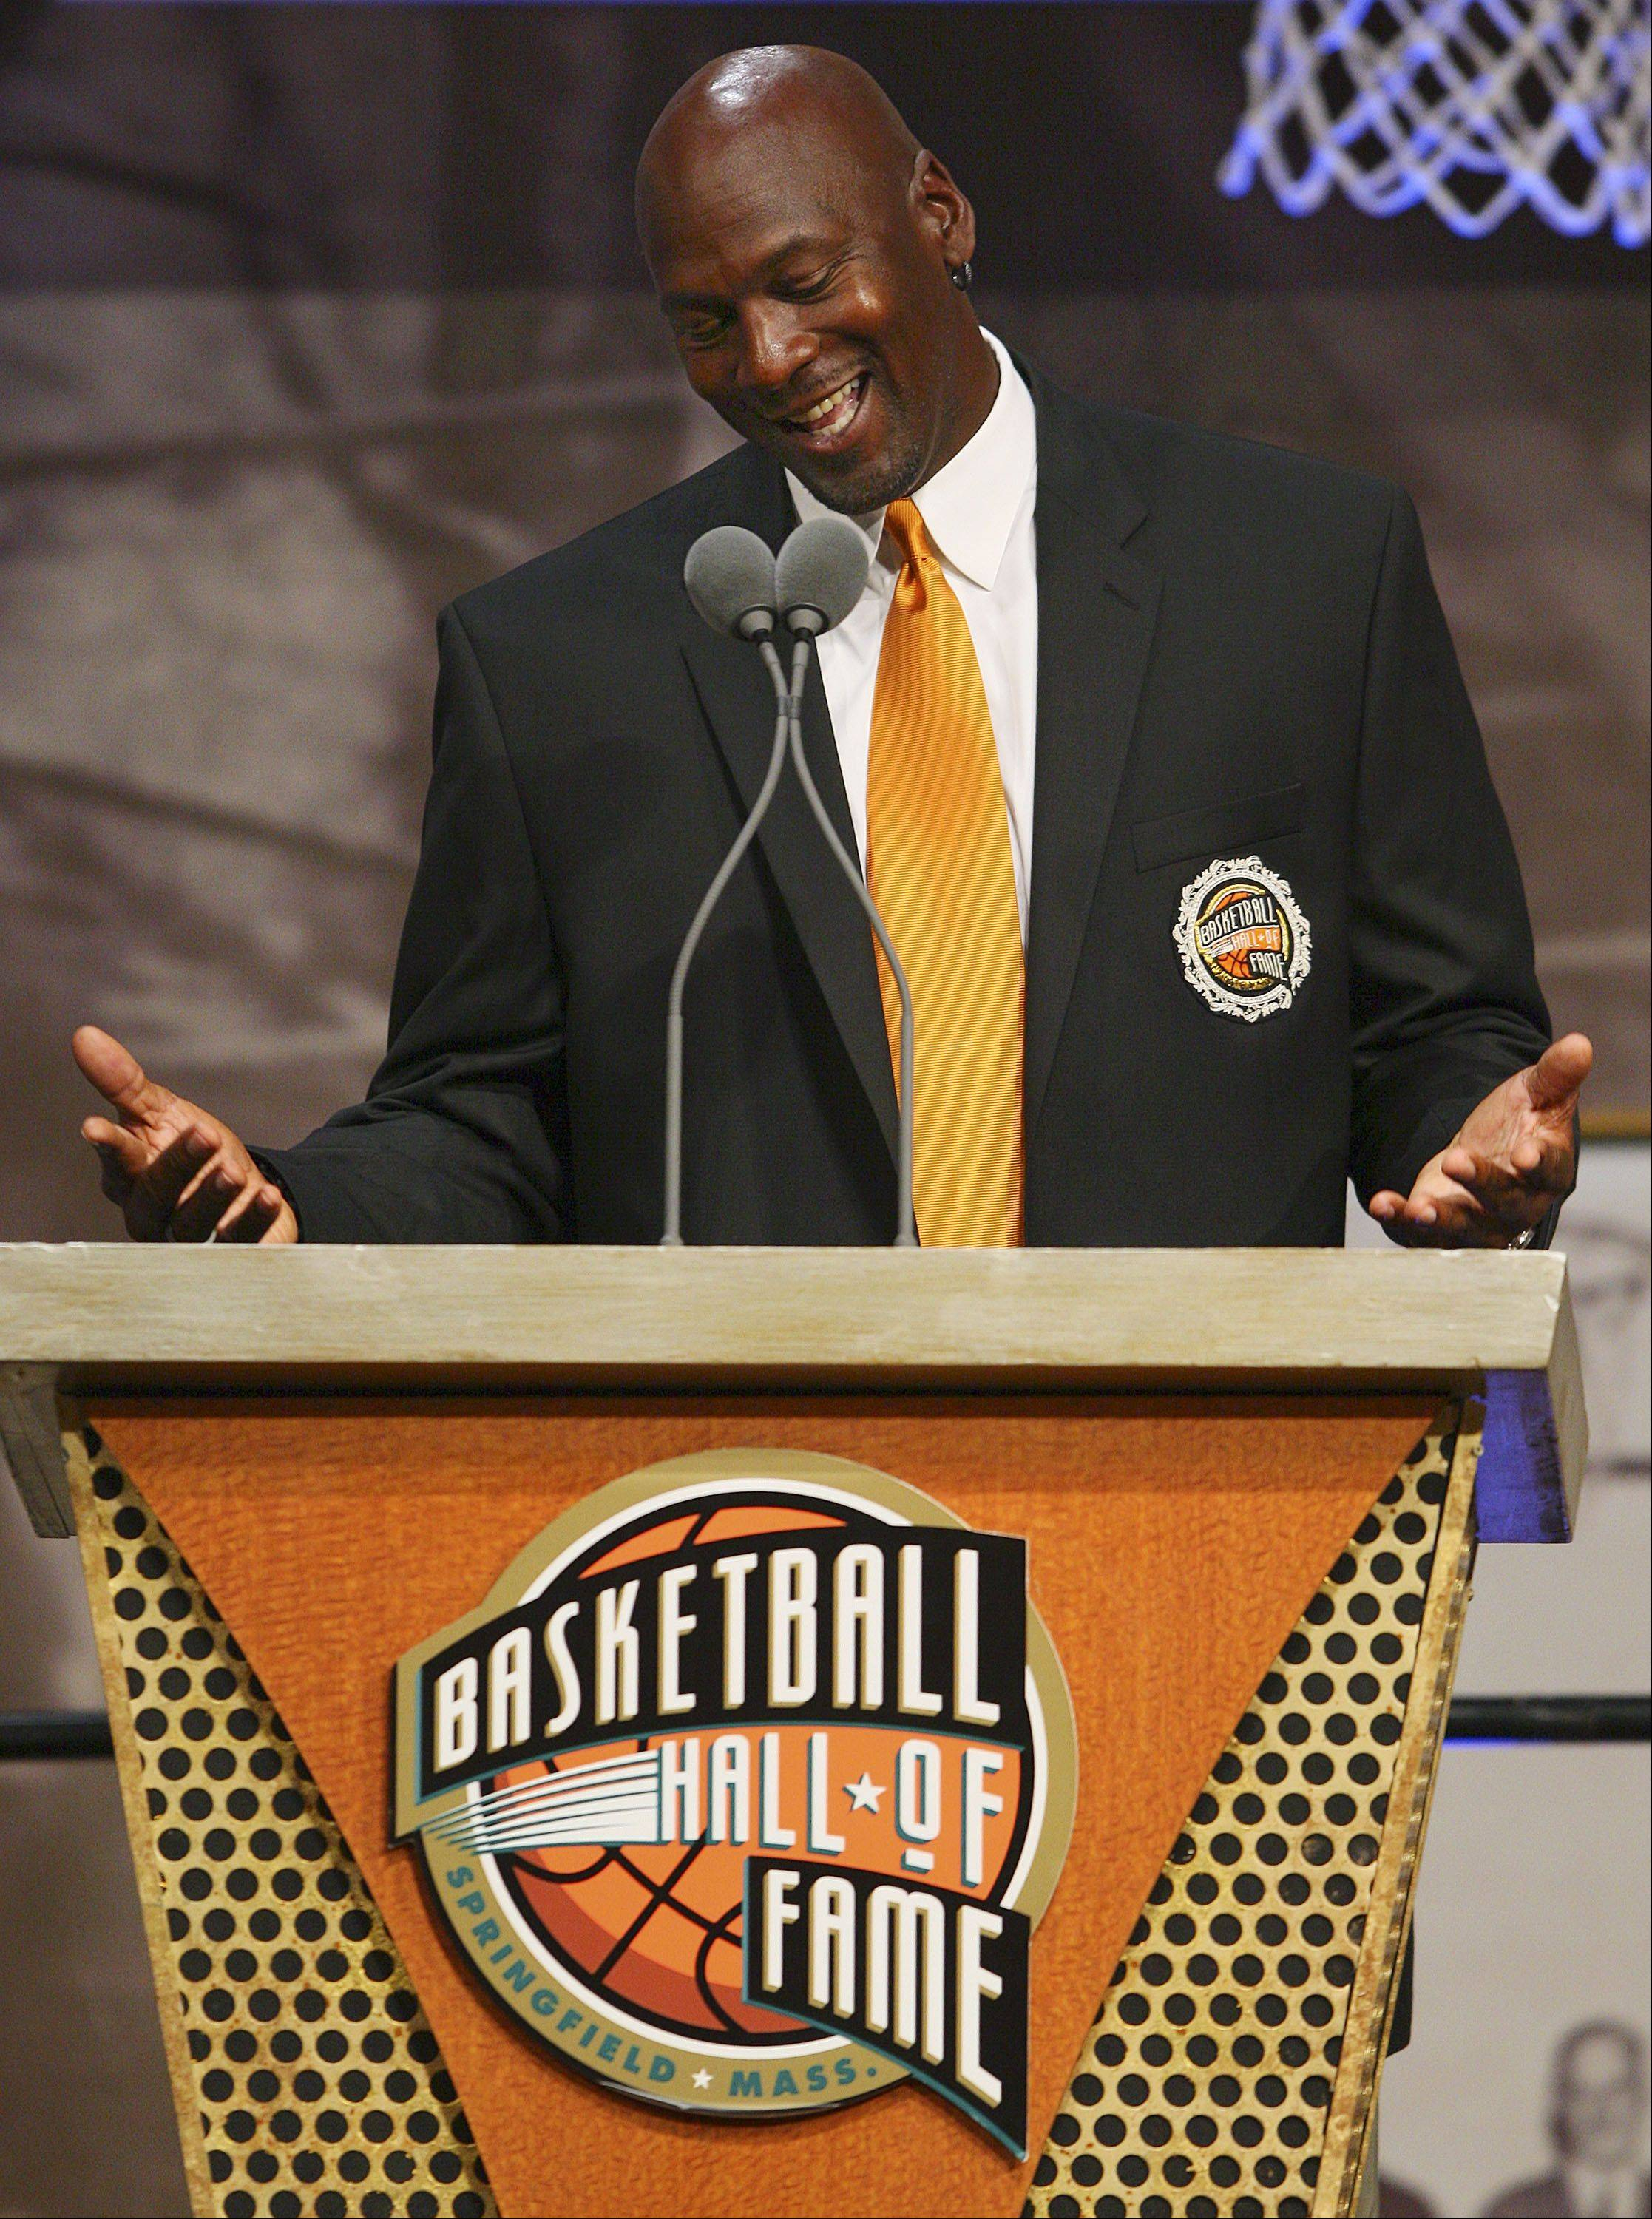 Former Chicago Bulls and Washington Wizards guard Michael Jordan laughs as he answers a reporter's question during a media availability before his enshrinement in the Basketball Hall of Fame in Springfield, Mass., Friday morning, Sept. 11, 2009.